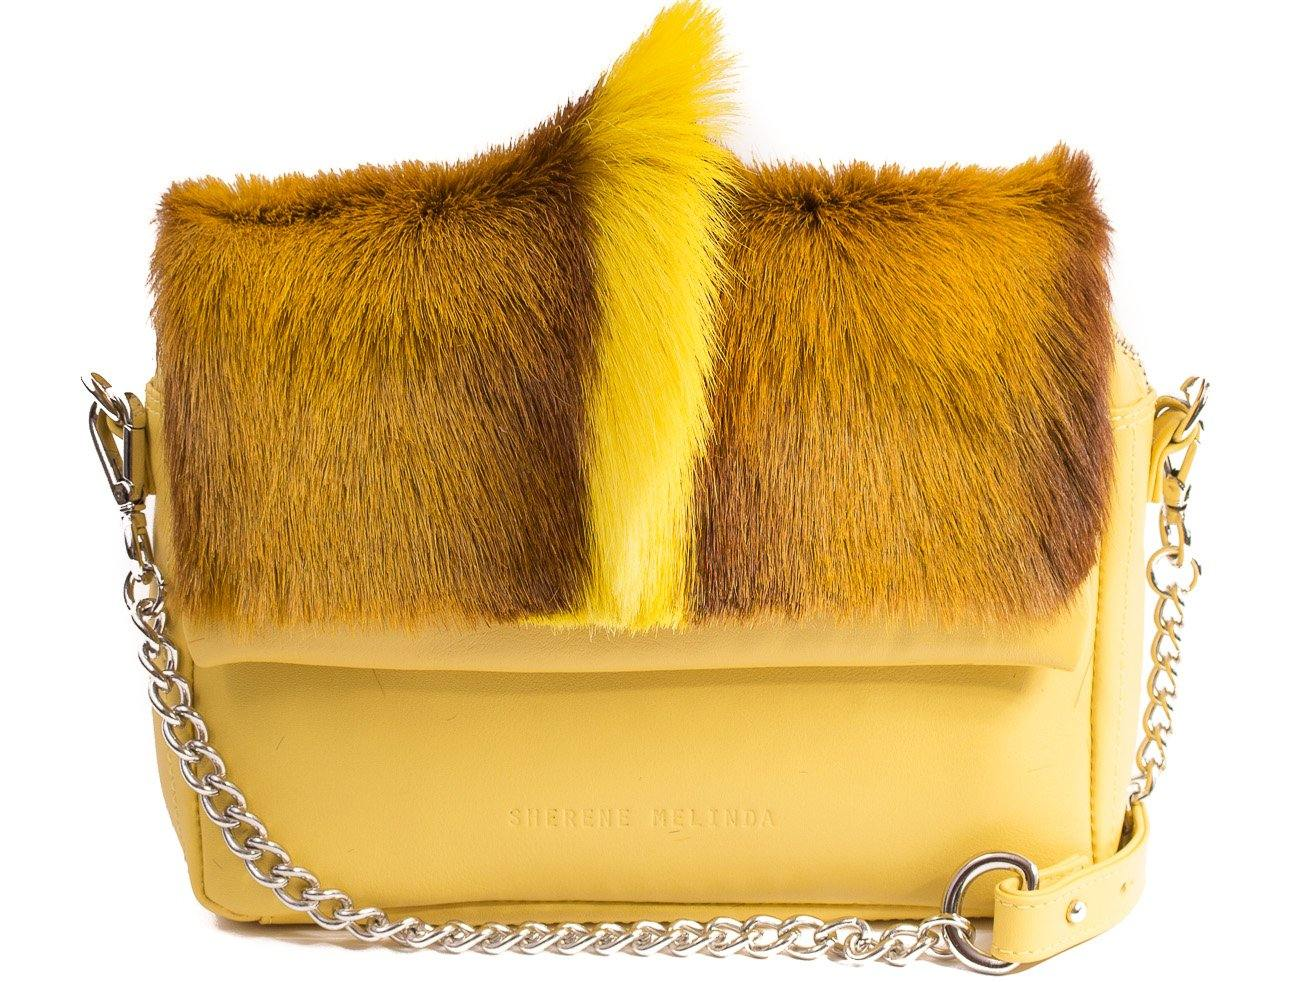 a3e4324a37 sherene melinda springbok hair-on-hide yellow leather shoulder bag fan  front strap